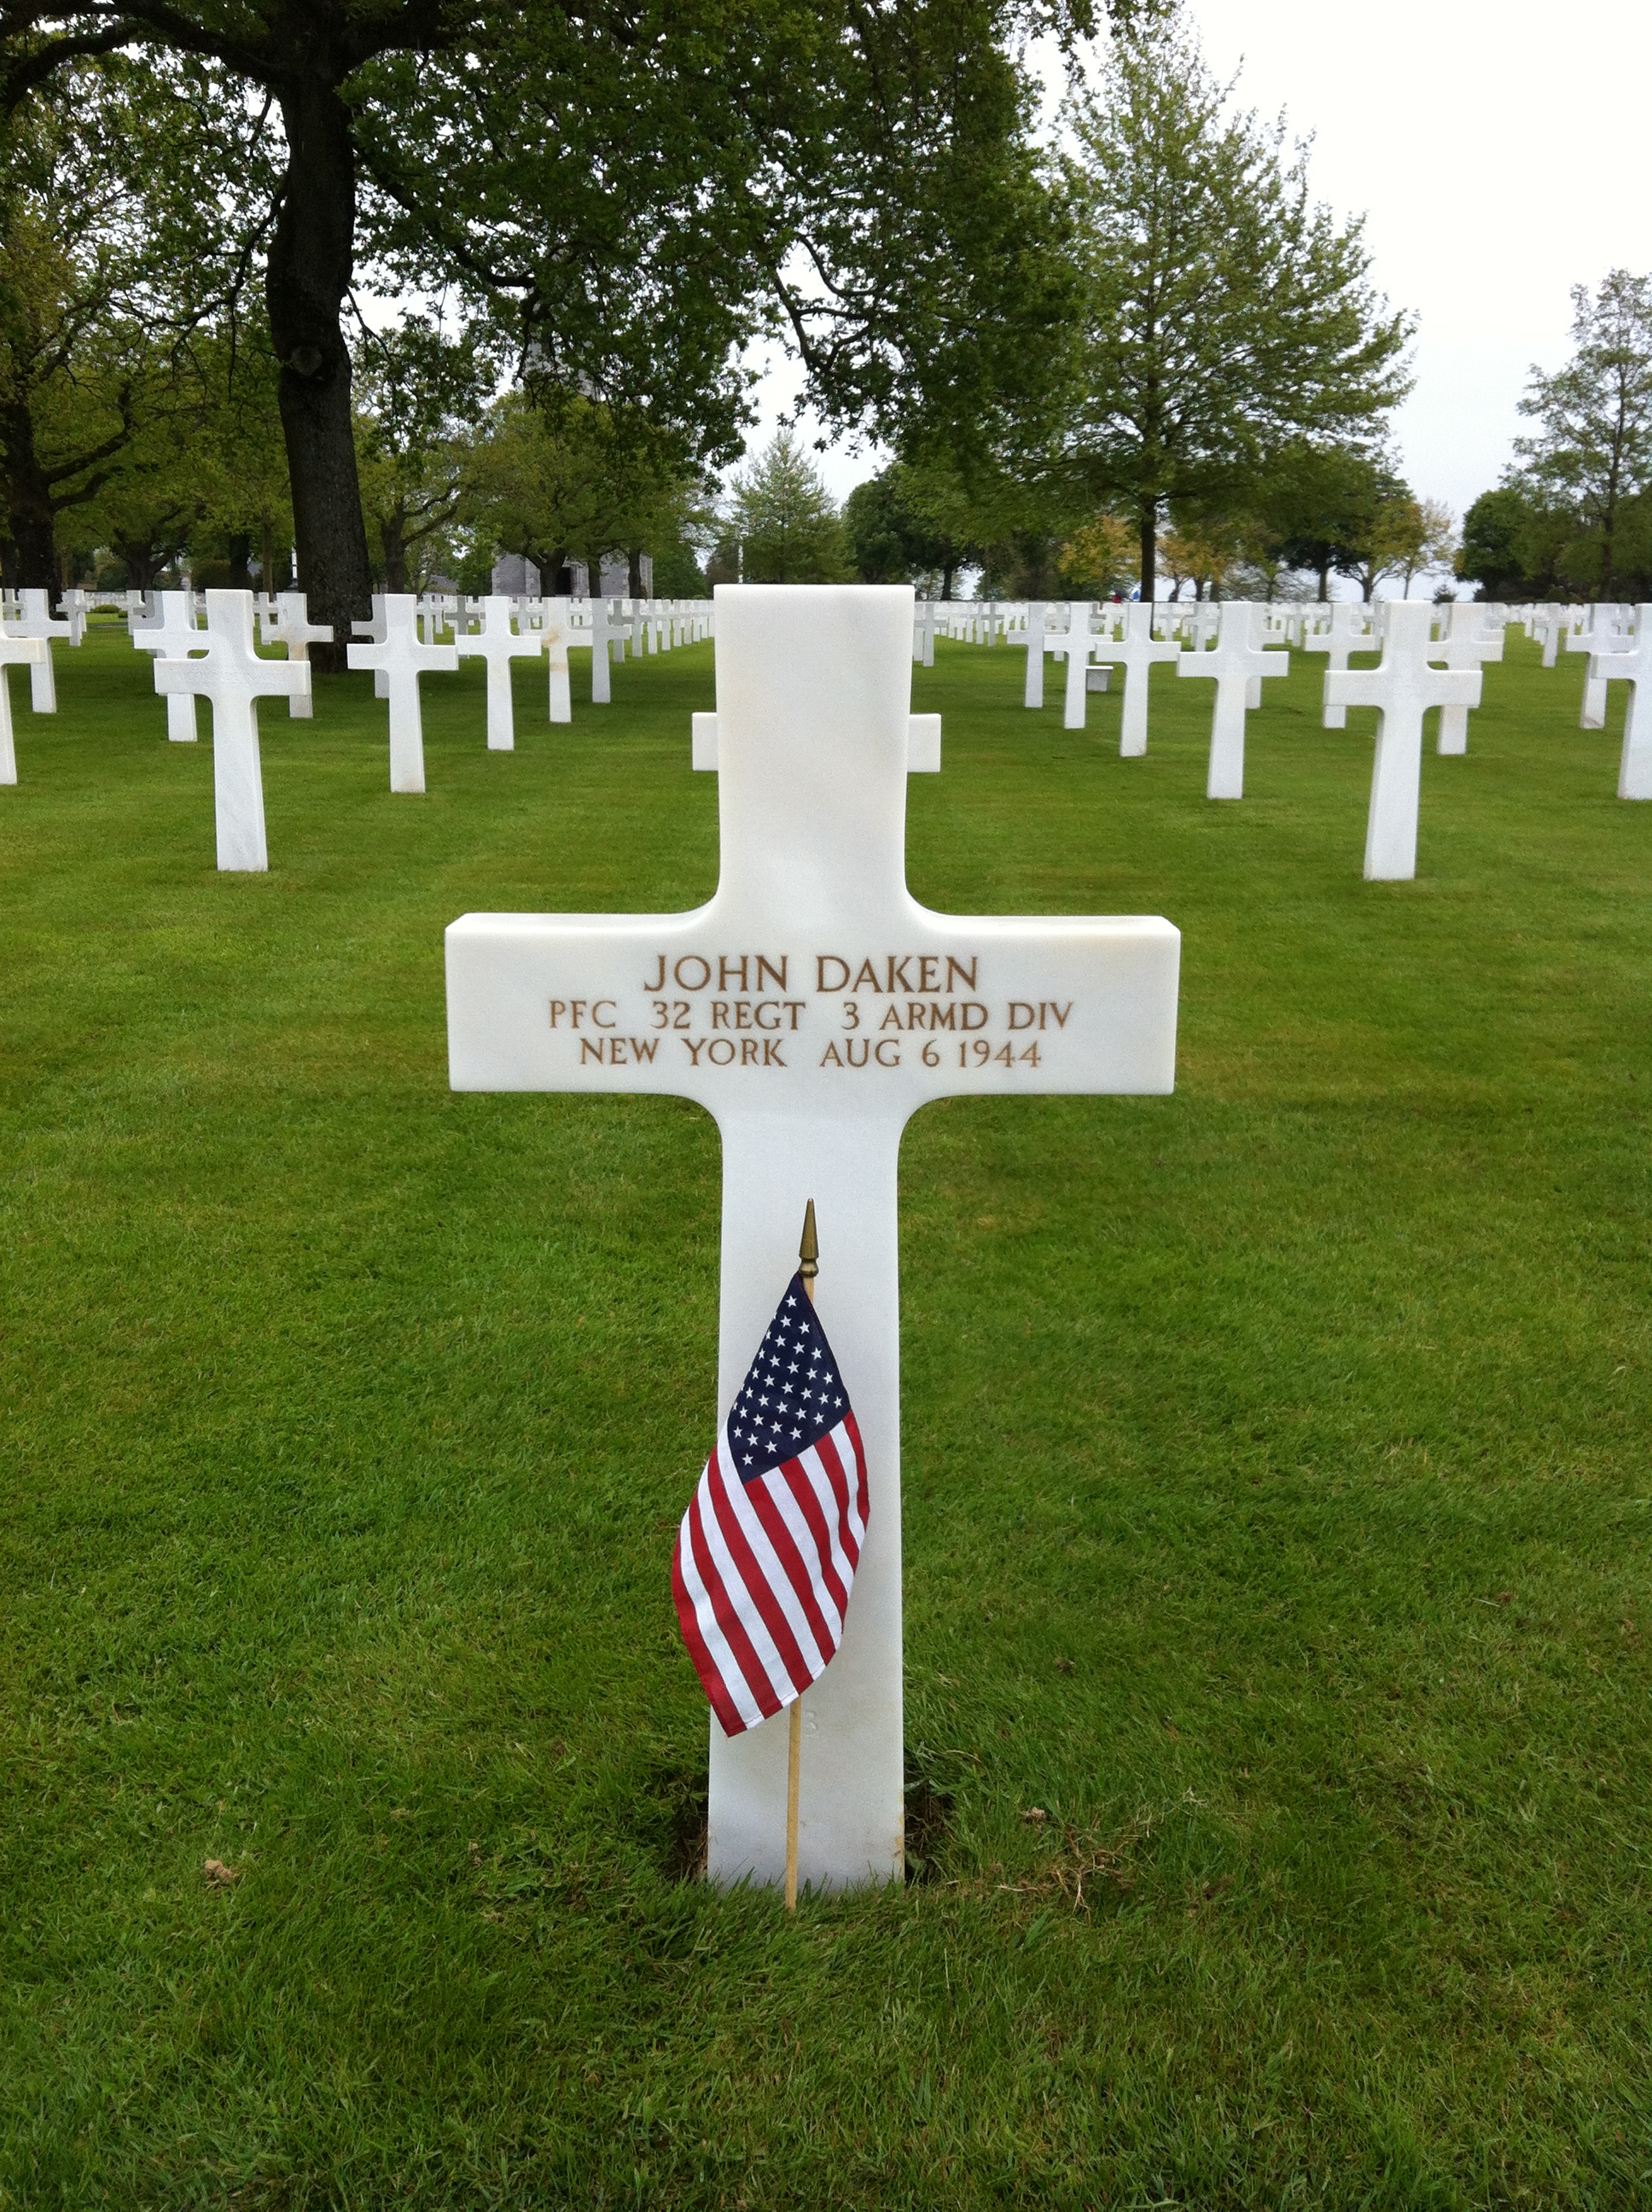 Remember John Dikun and other veterans on Memorial Day